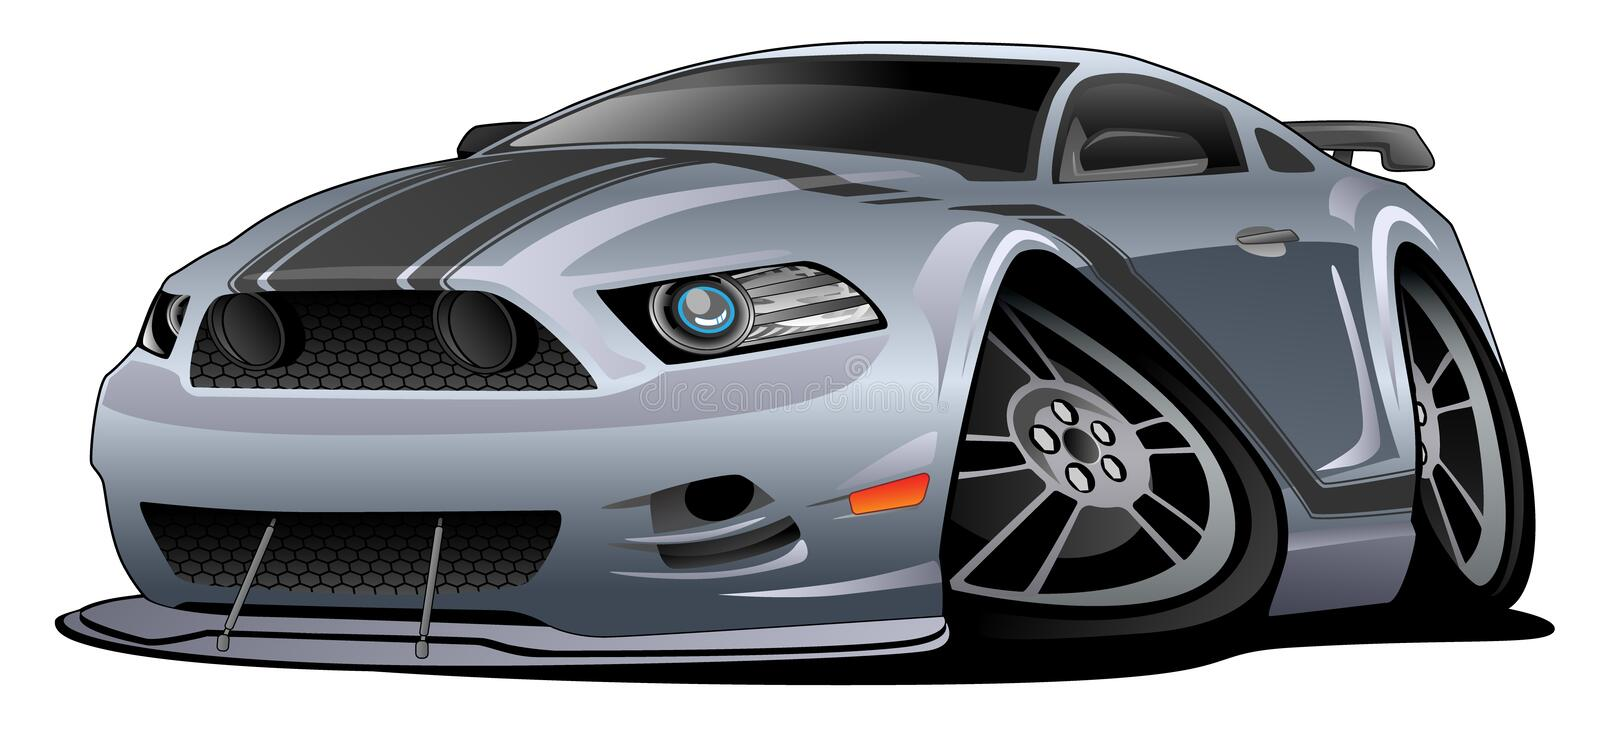 Modern American Muscle Car Cartoon Vector Illustration vector illustration